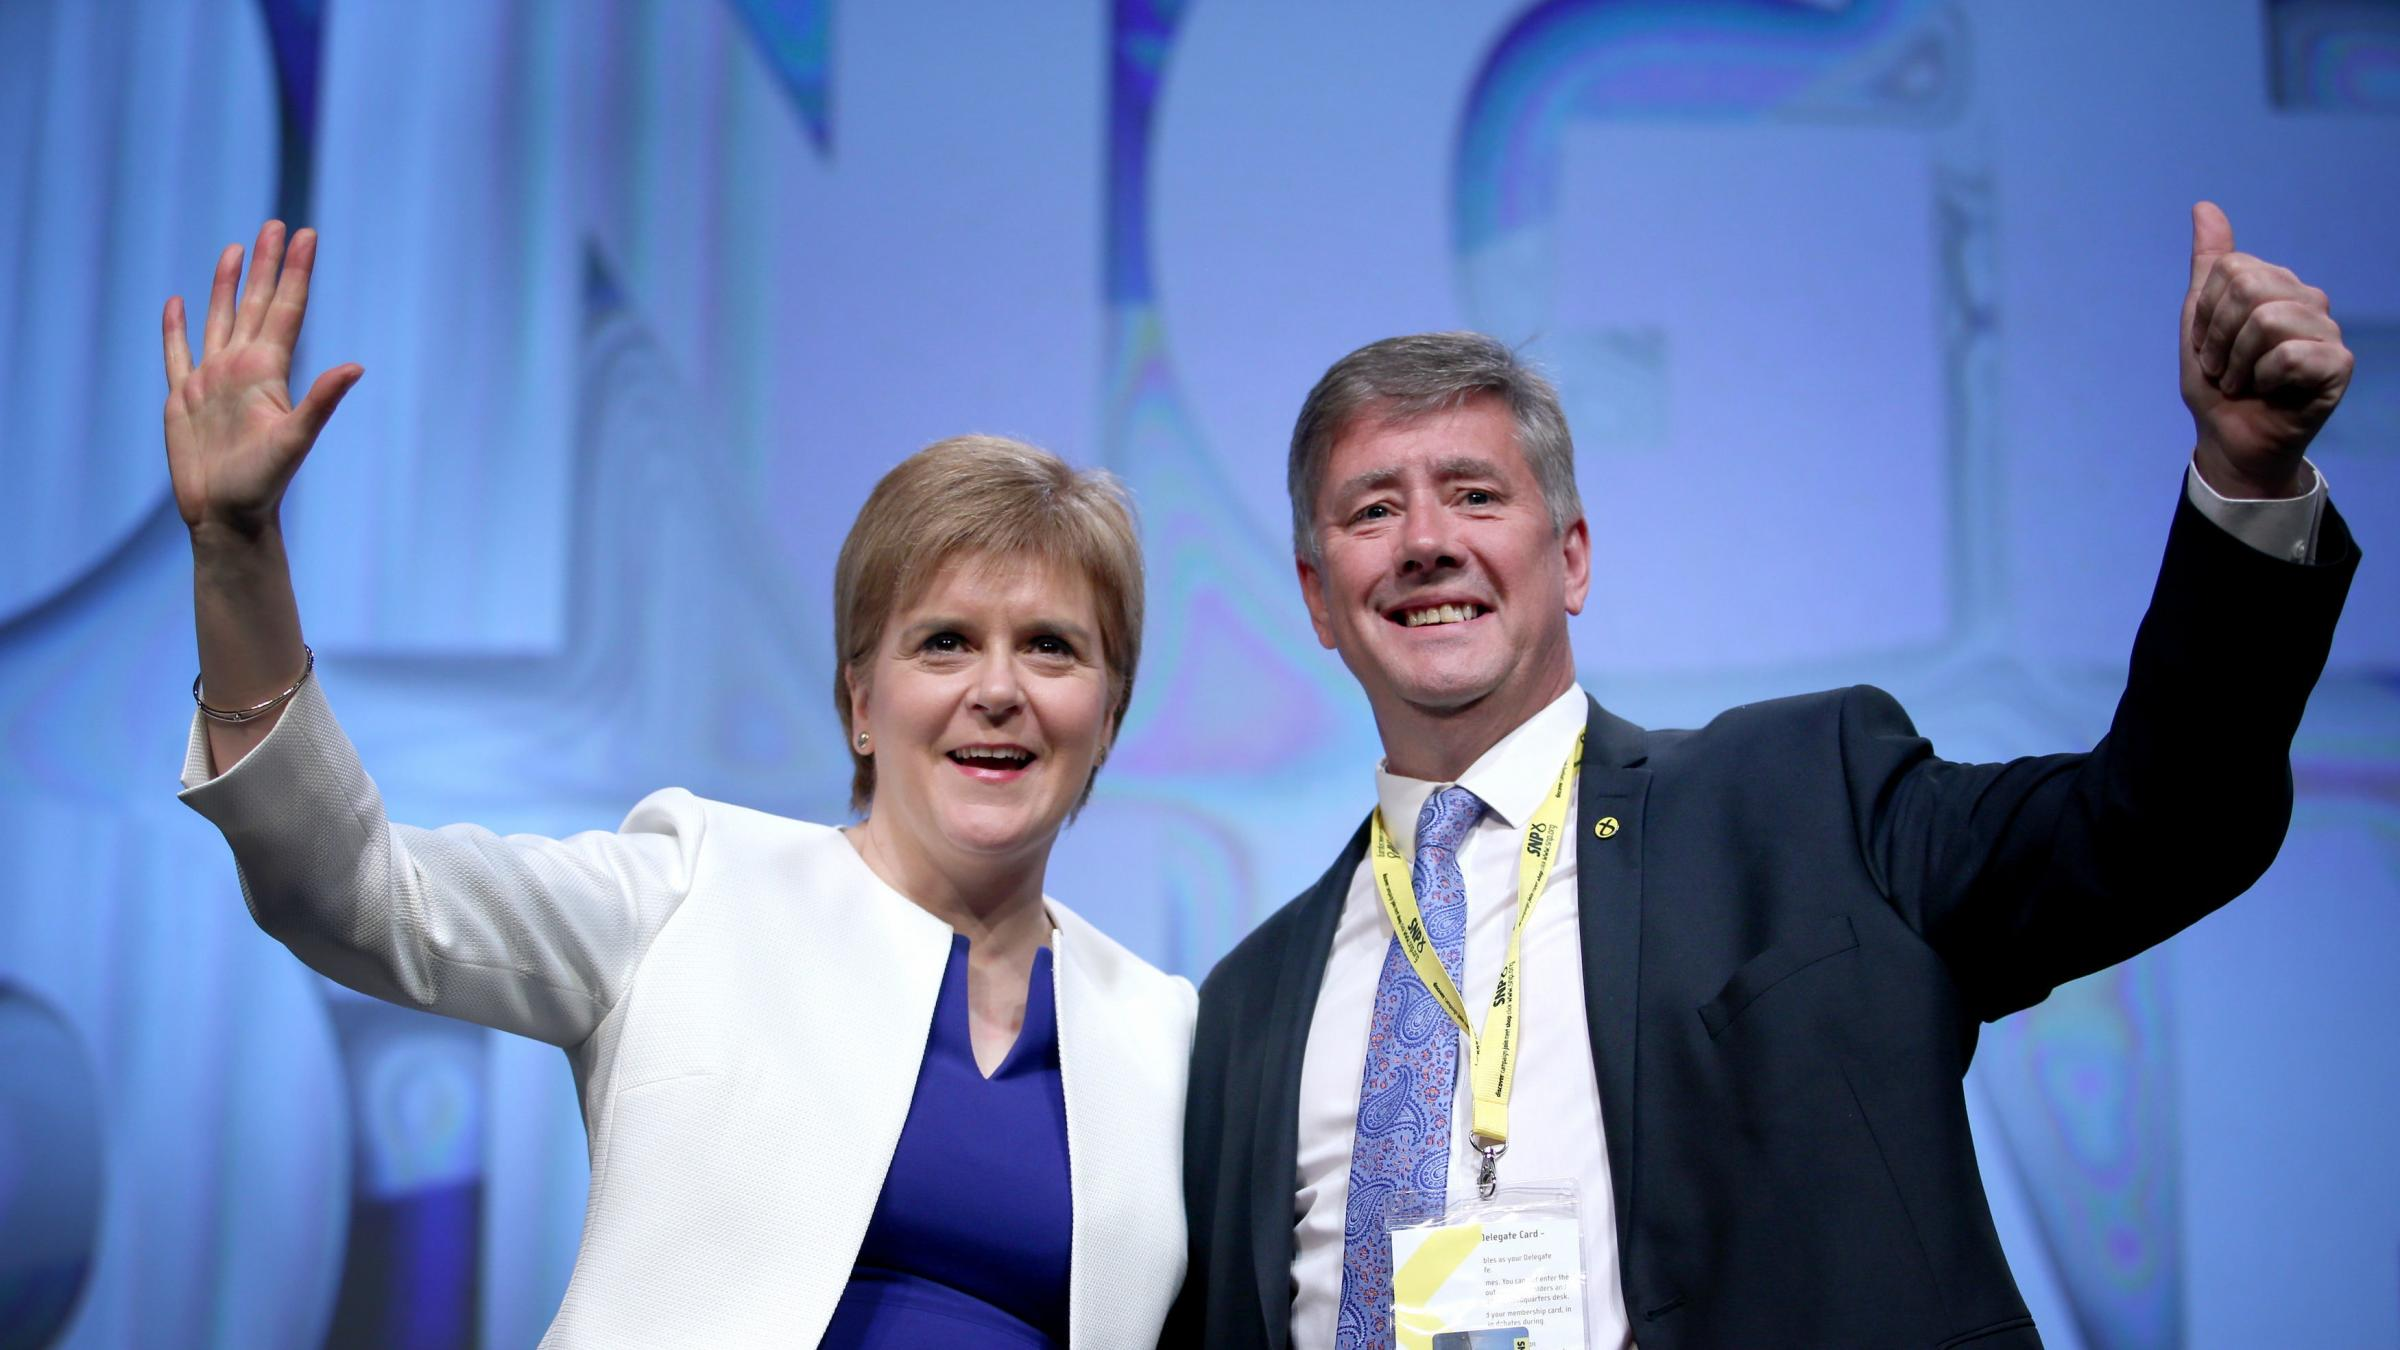 Keith Brown: 'Generation-defining failure' on Brexit strengthens case for independence